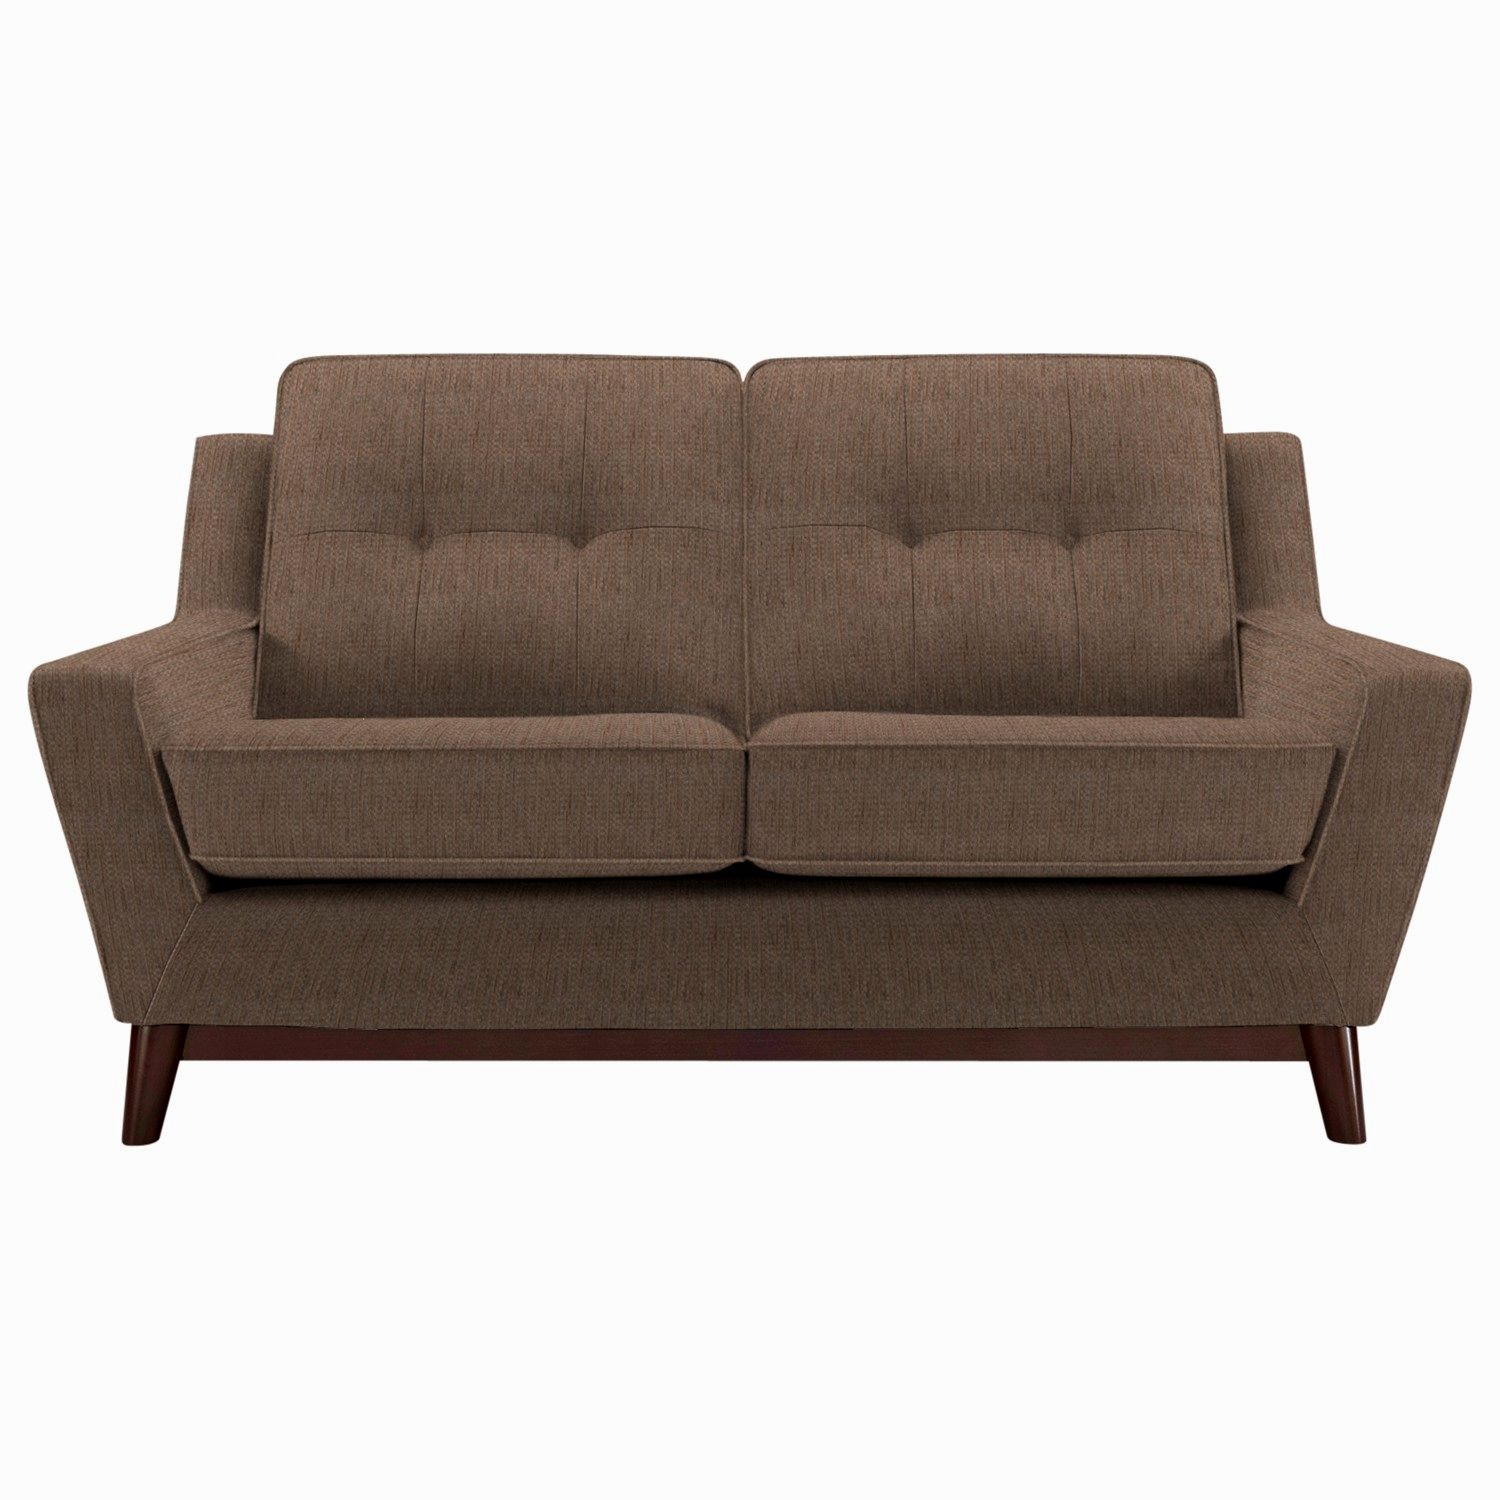 amazing sofas for sale cheap decoration-Beautiful sofas for Sale Cheap Pattern